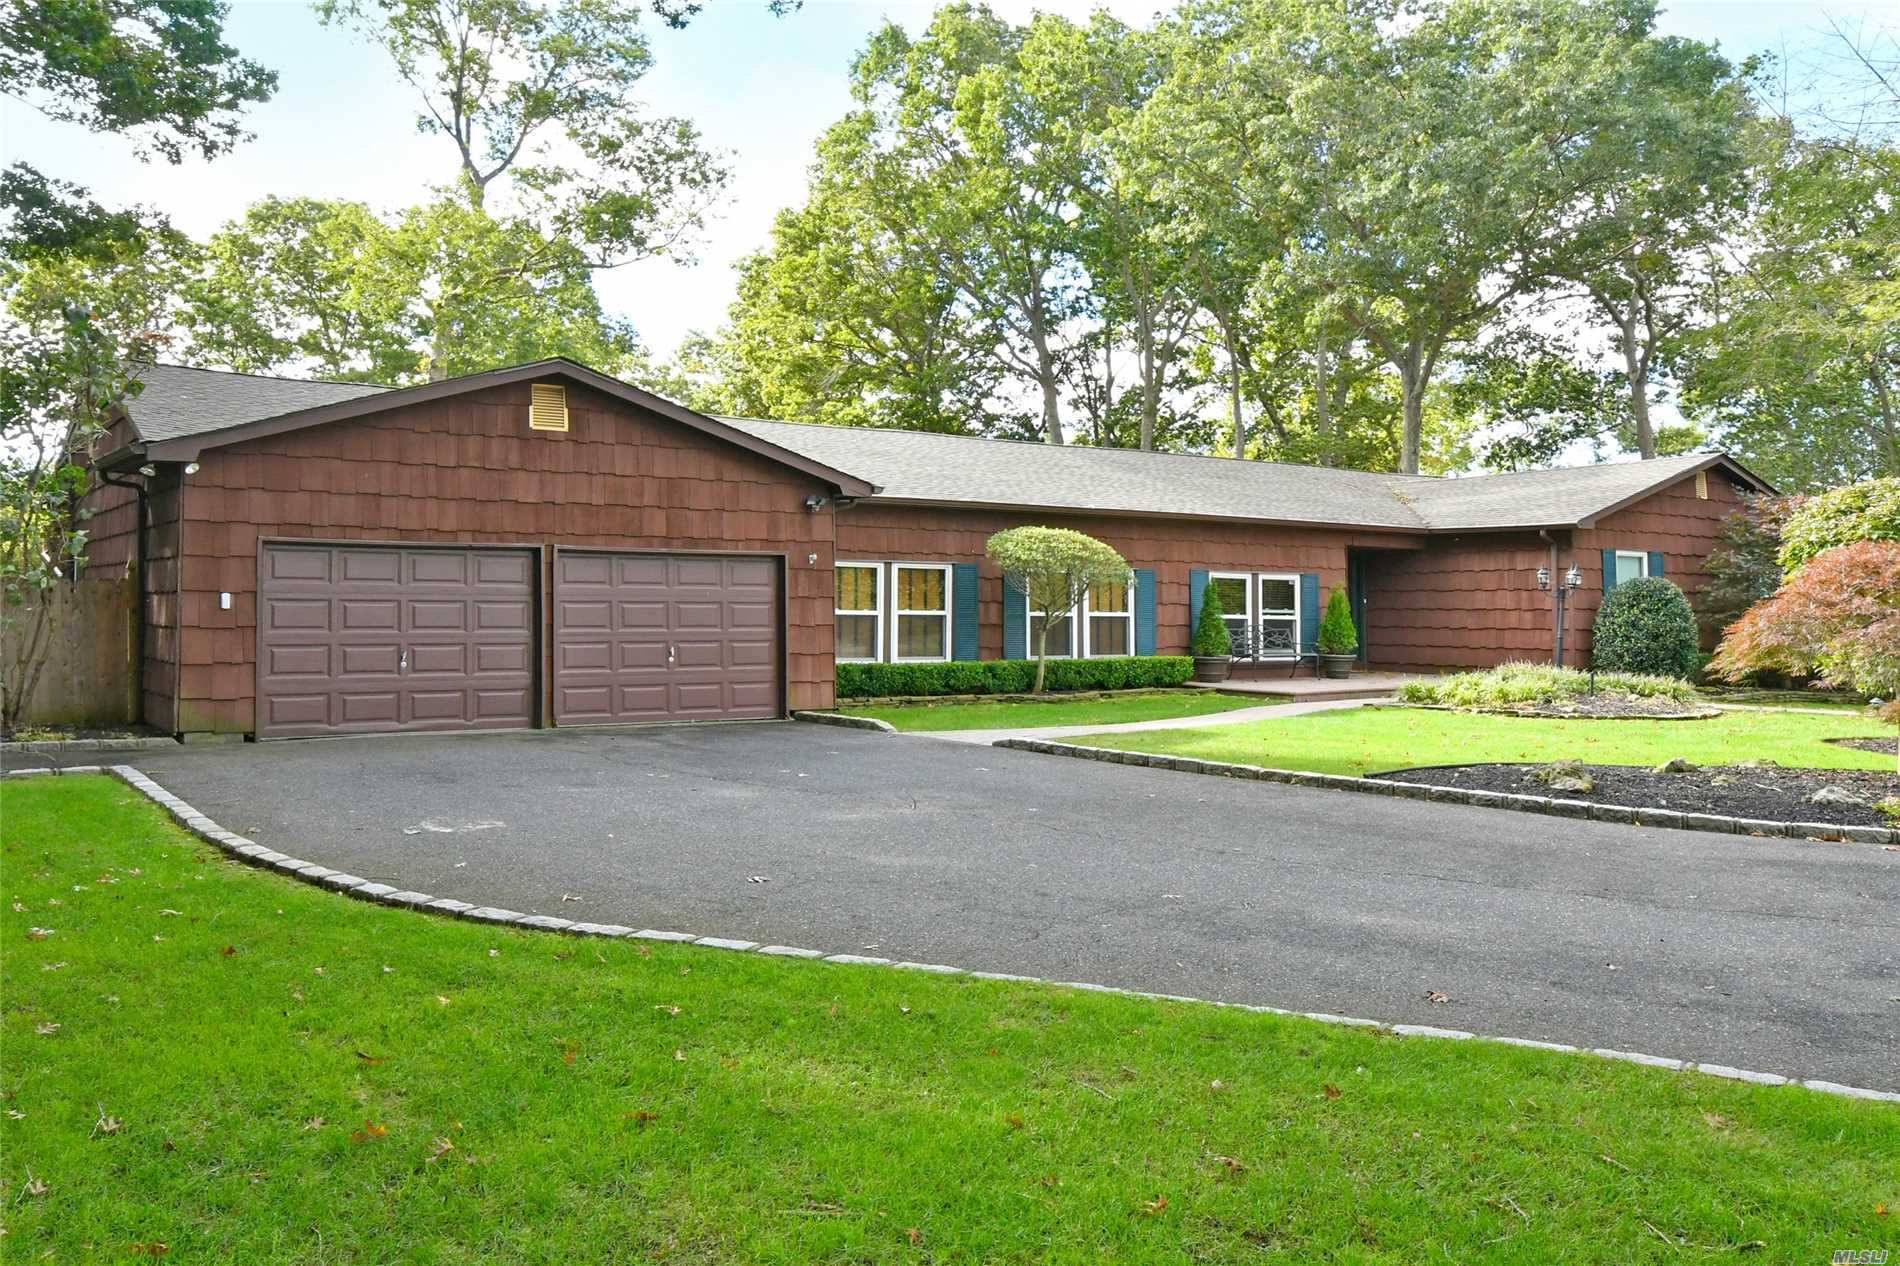 Magnificent 4 Bedroom 3 Bath Expanded Ranch With Country Club Backyard. Beautiful Granite Kitchen W/Stainless Steel Appliances. Brand New Roof, Windows, Pool Heater, Also Gas Heating System Is Brand New, 4 Zones. Fabulous Open Floor Plan- Great For Entertaining!